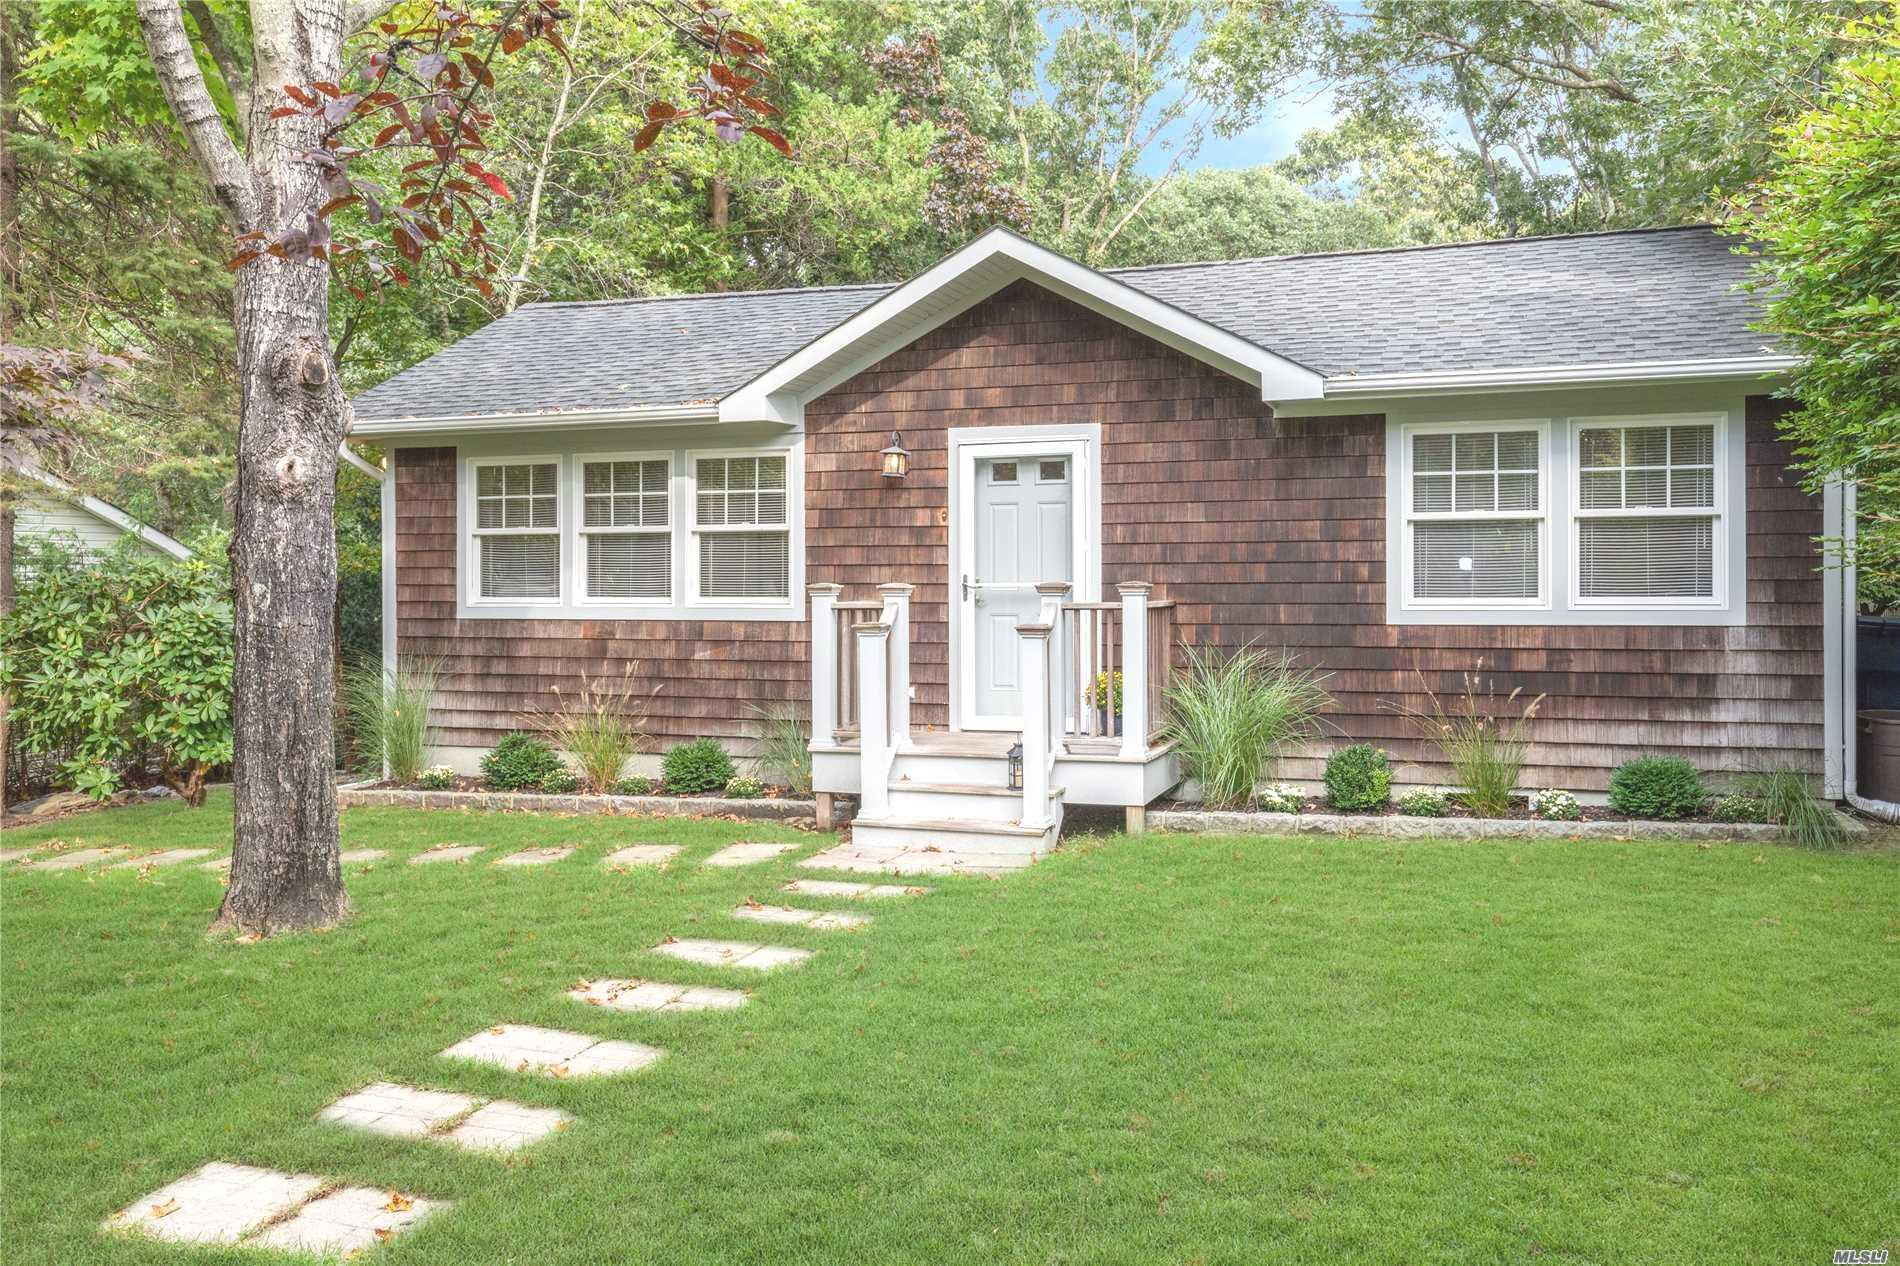 Photo of home for sale at 17 Old Squiretown Rd, Hampton Bays NY